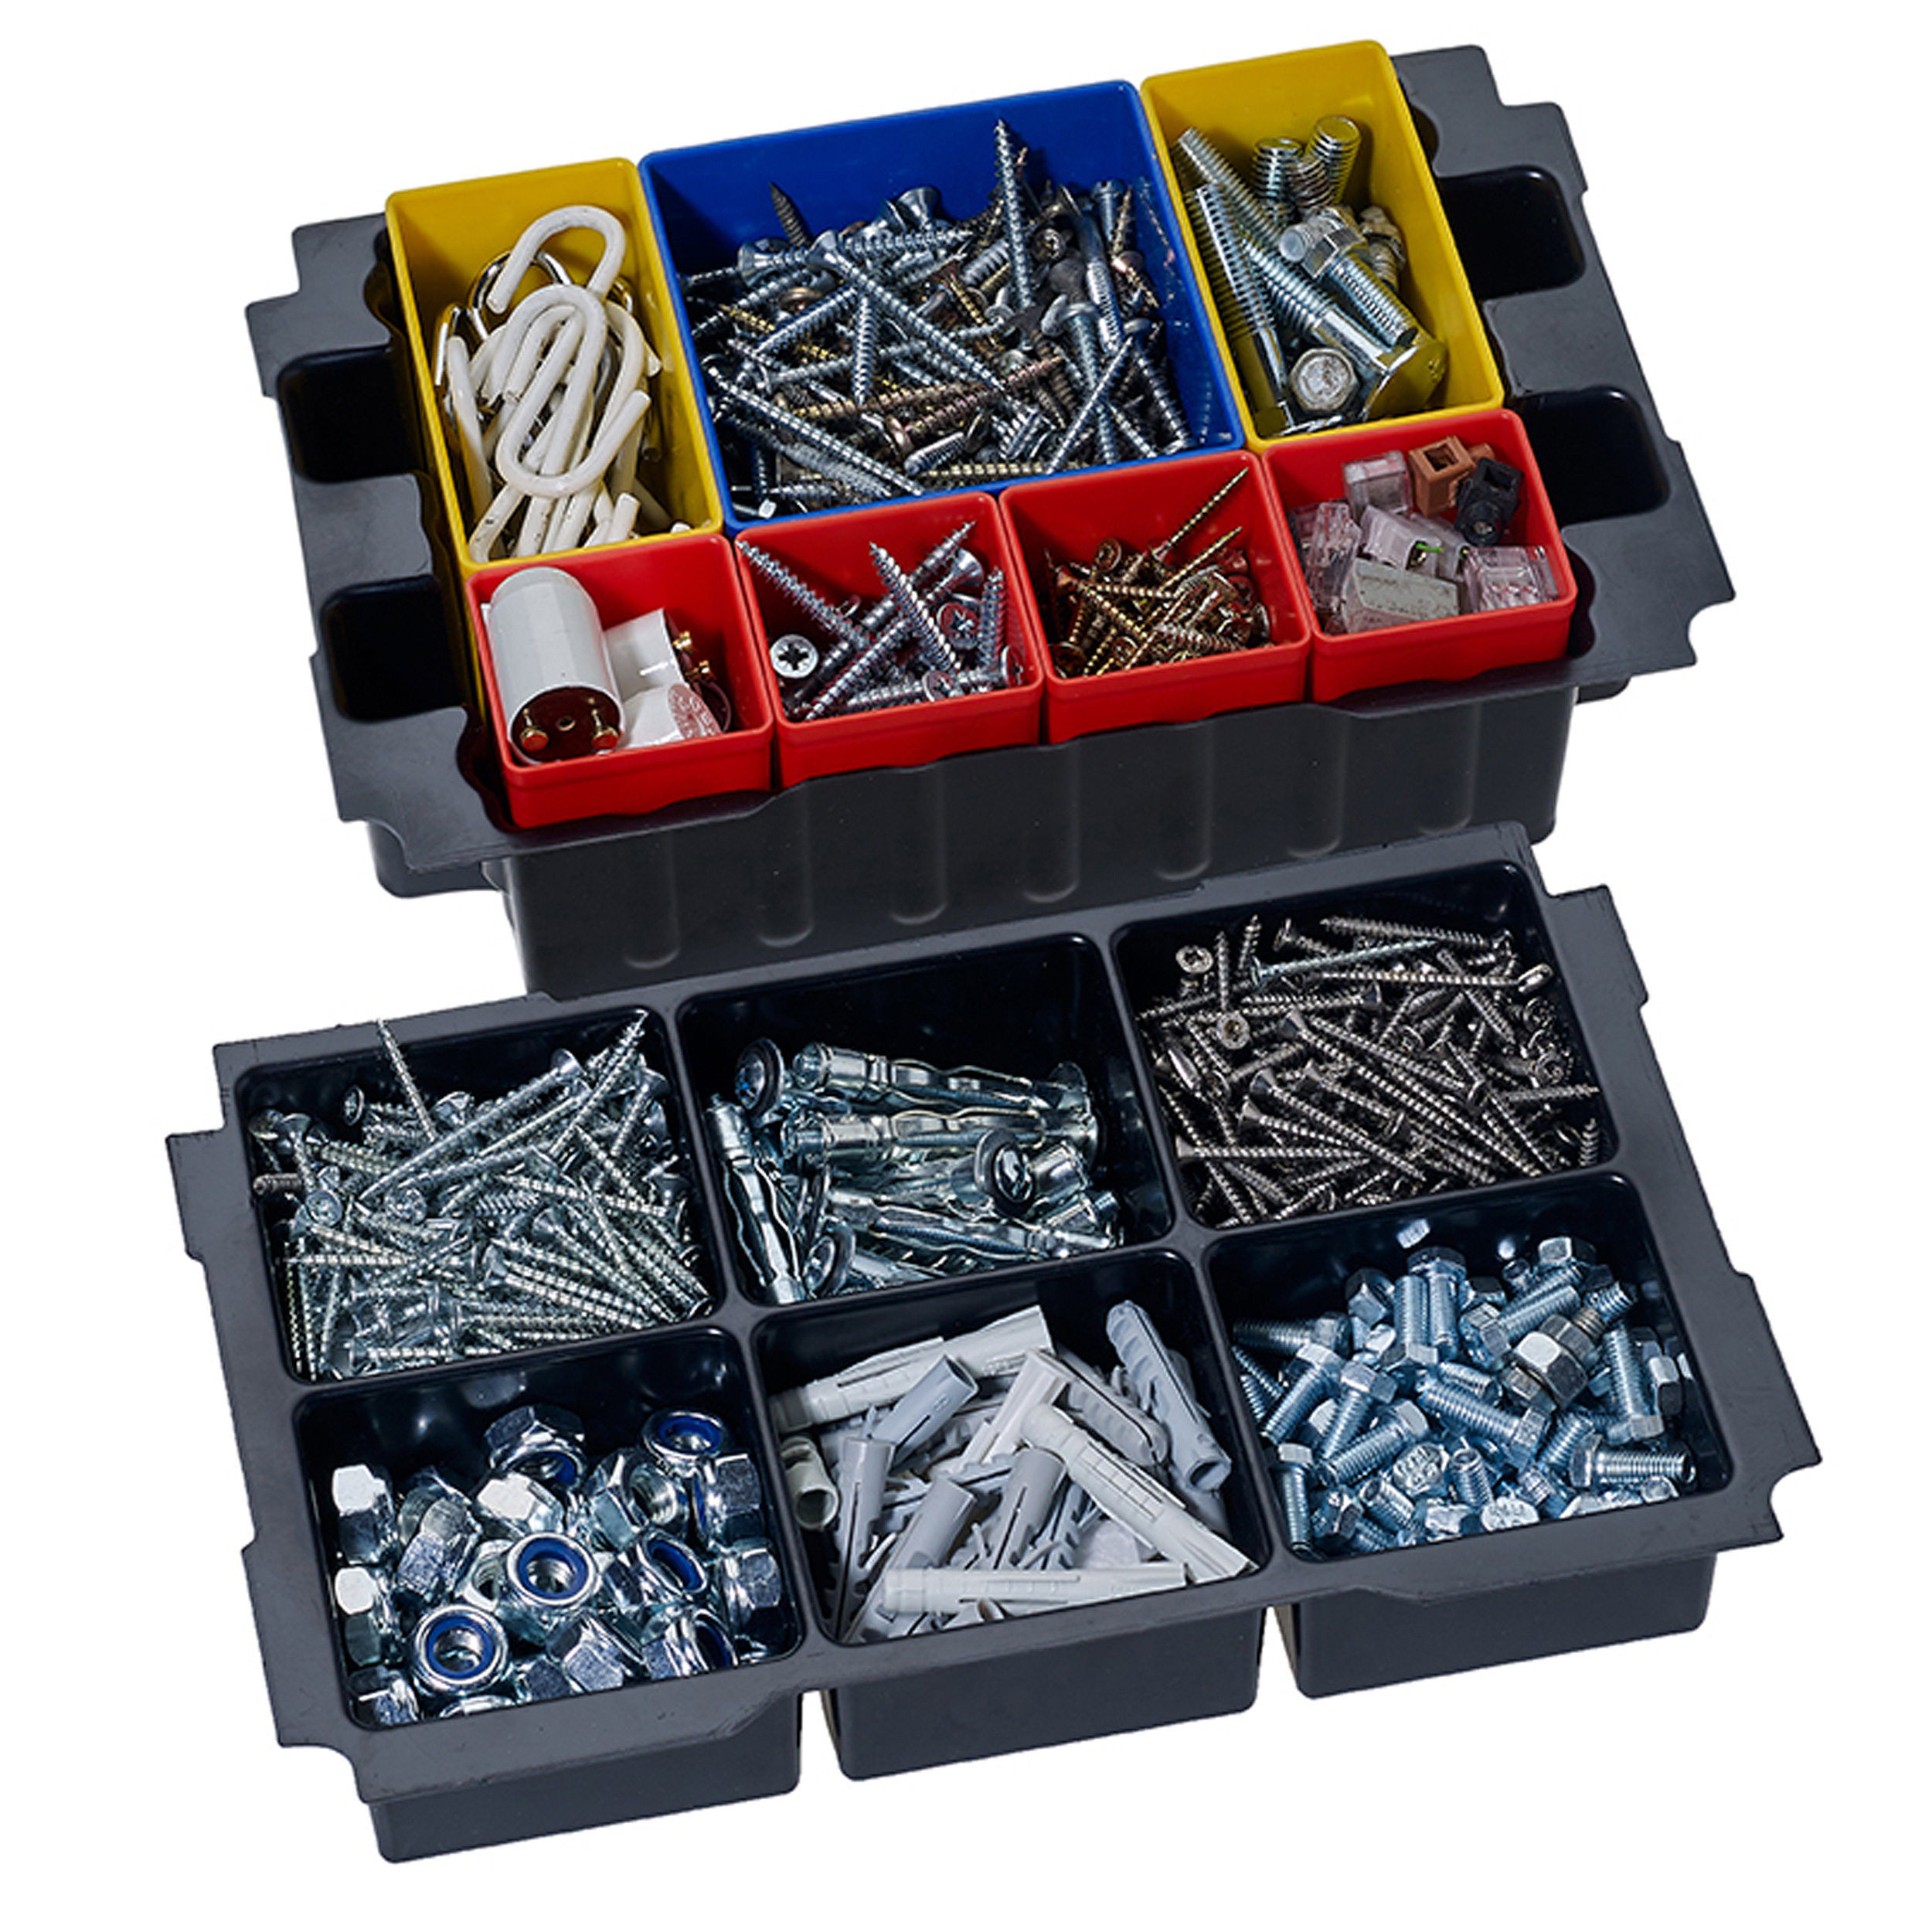 Box Insert Set with 6 divisions for MINI T-LOC III systainers